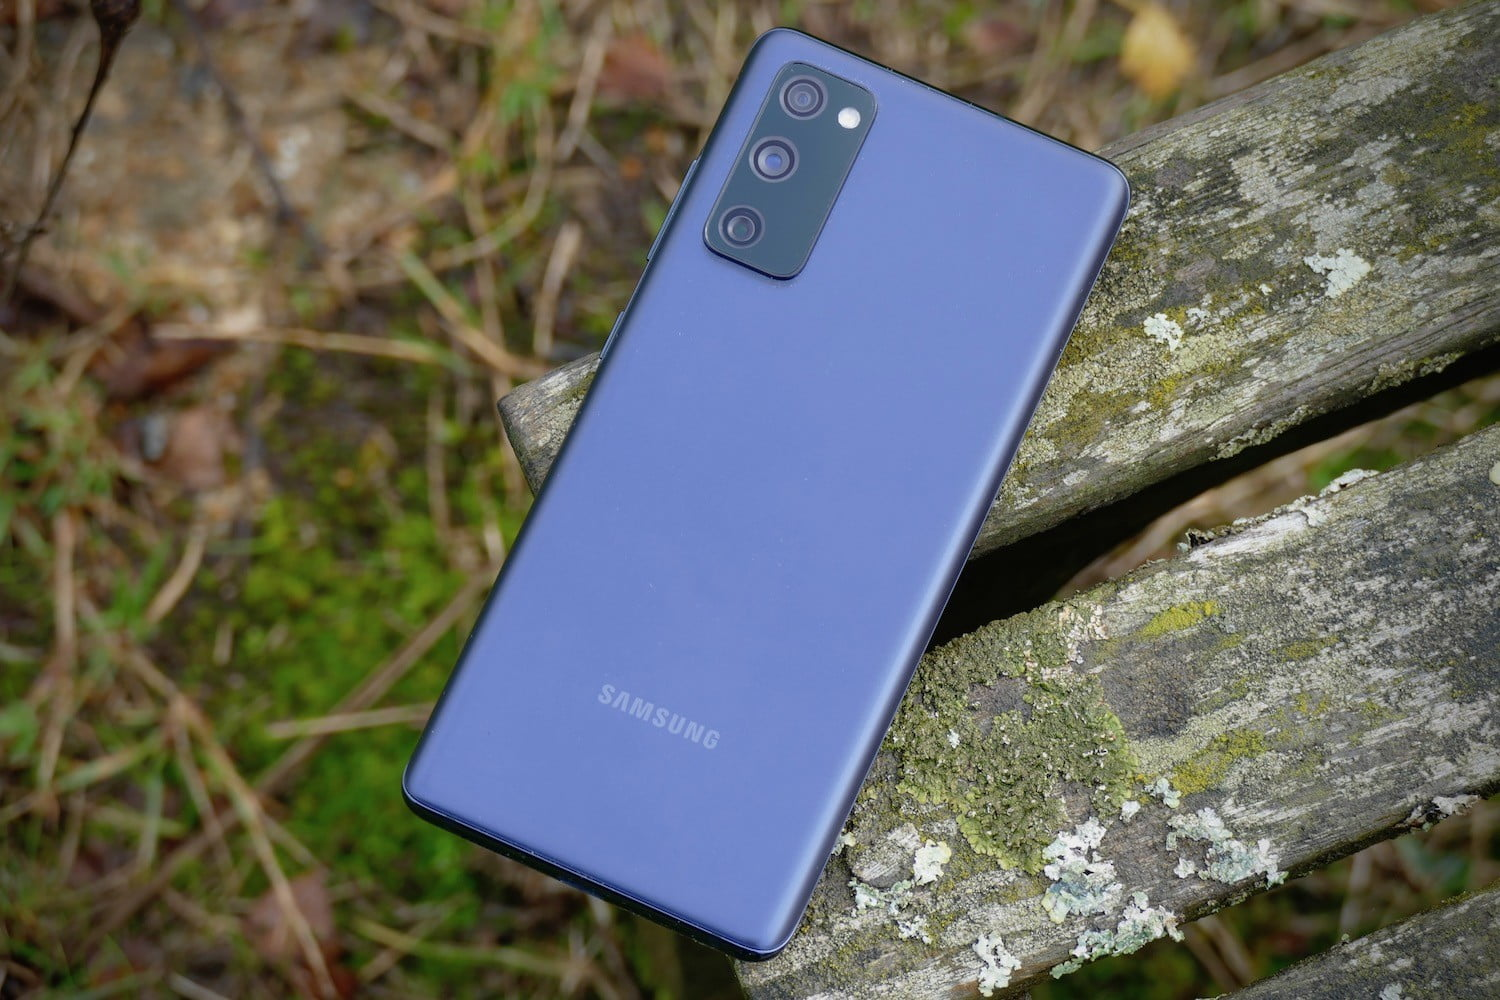 pixel 5 oneplus 8t galaxy s20 fe shootout buying guide samsung navy blue back